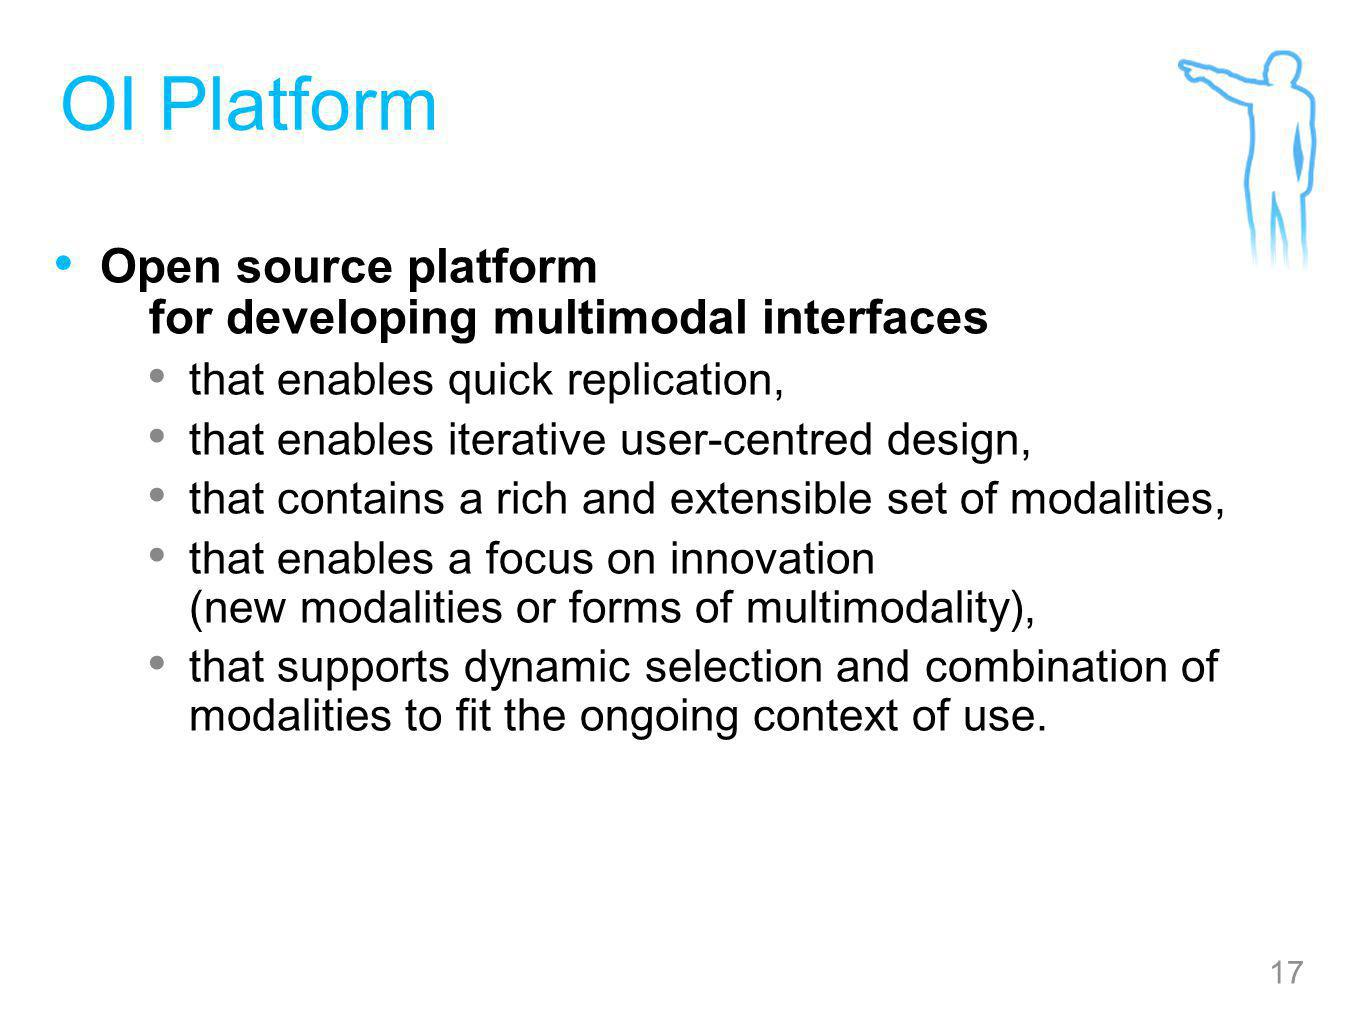 17 OI Platform Open source platform for developing multimodal interfaces that enables quick replication, that enables iterative user-centred design, that contains a rich and extensible set of modalities, that enables a focus on innovation (new modalities or forms of multimodality), that supports dynamic selection and combination of modalities to fit the ongoing context of use.